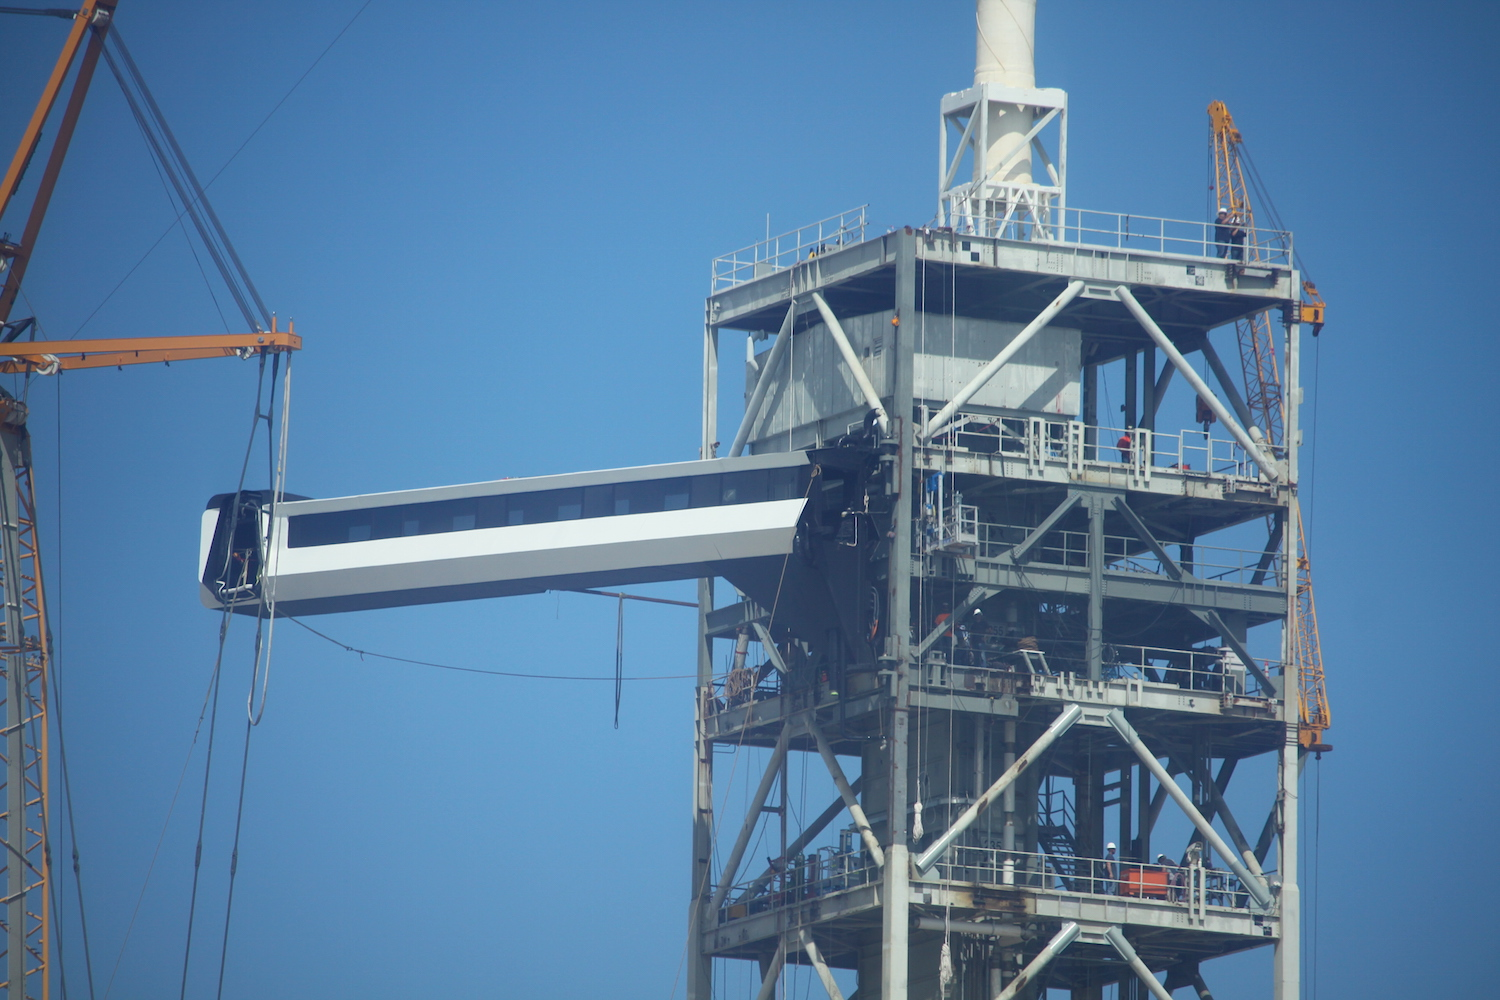 SpaceX's astronaut walkway installed on Florida launch pad